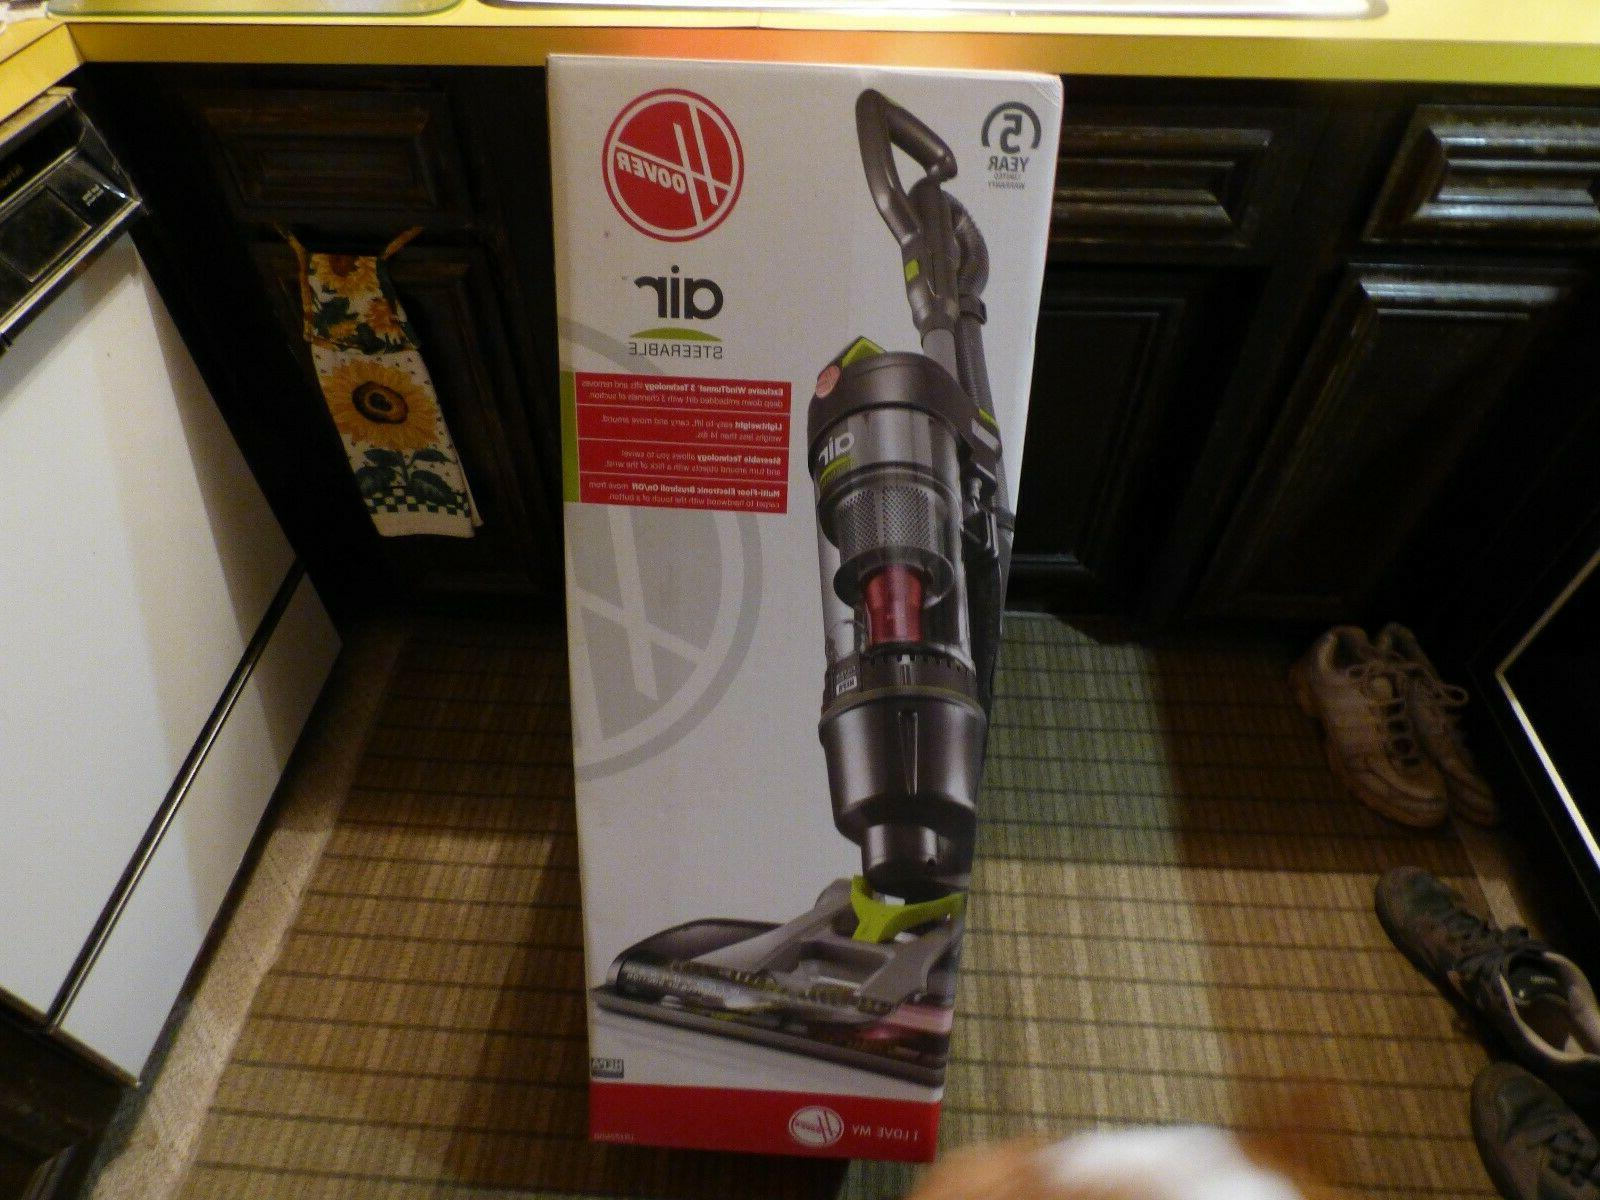 Hoover - Air Steerable Bagless Upright Vacuum - Silver/green